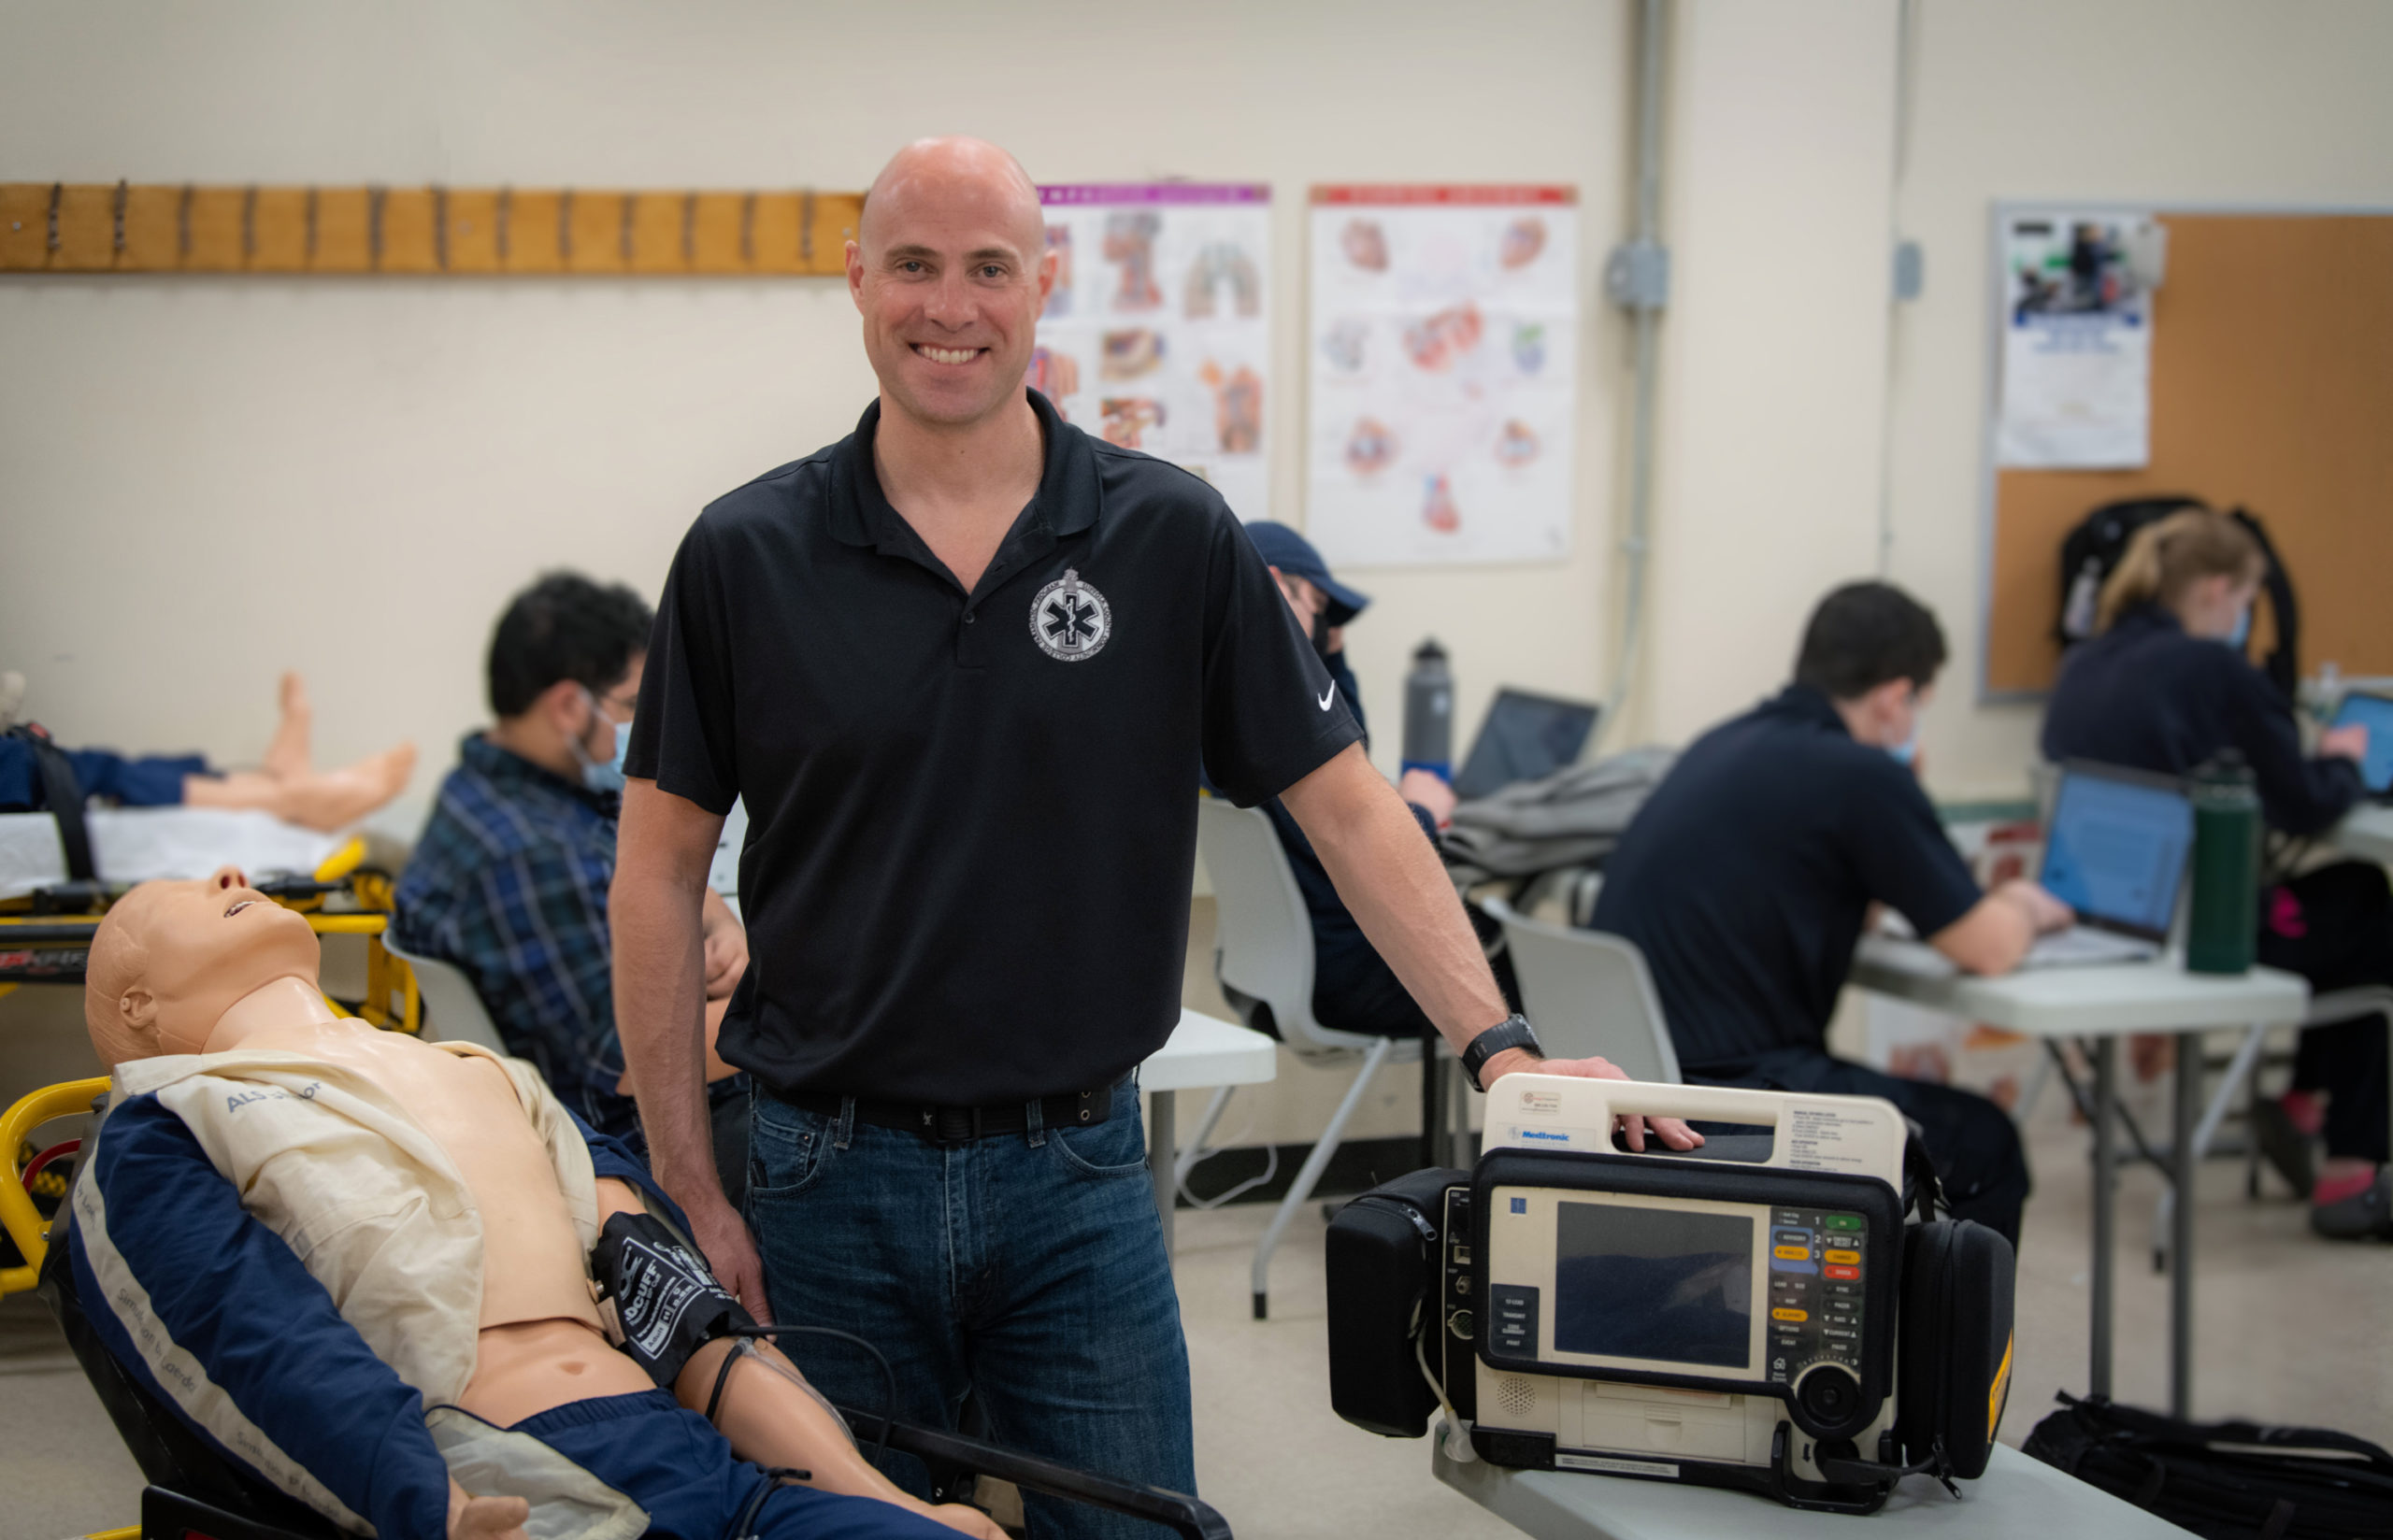 Suffolk Community College's Emergency Medical Care and Fire Programs Coordinator and Professor and Assistant Academic Chair Matt Zukosky.